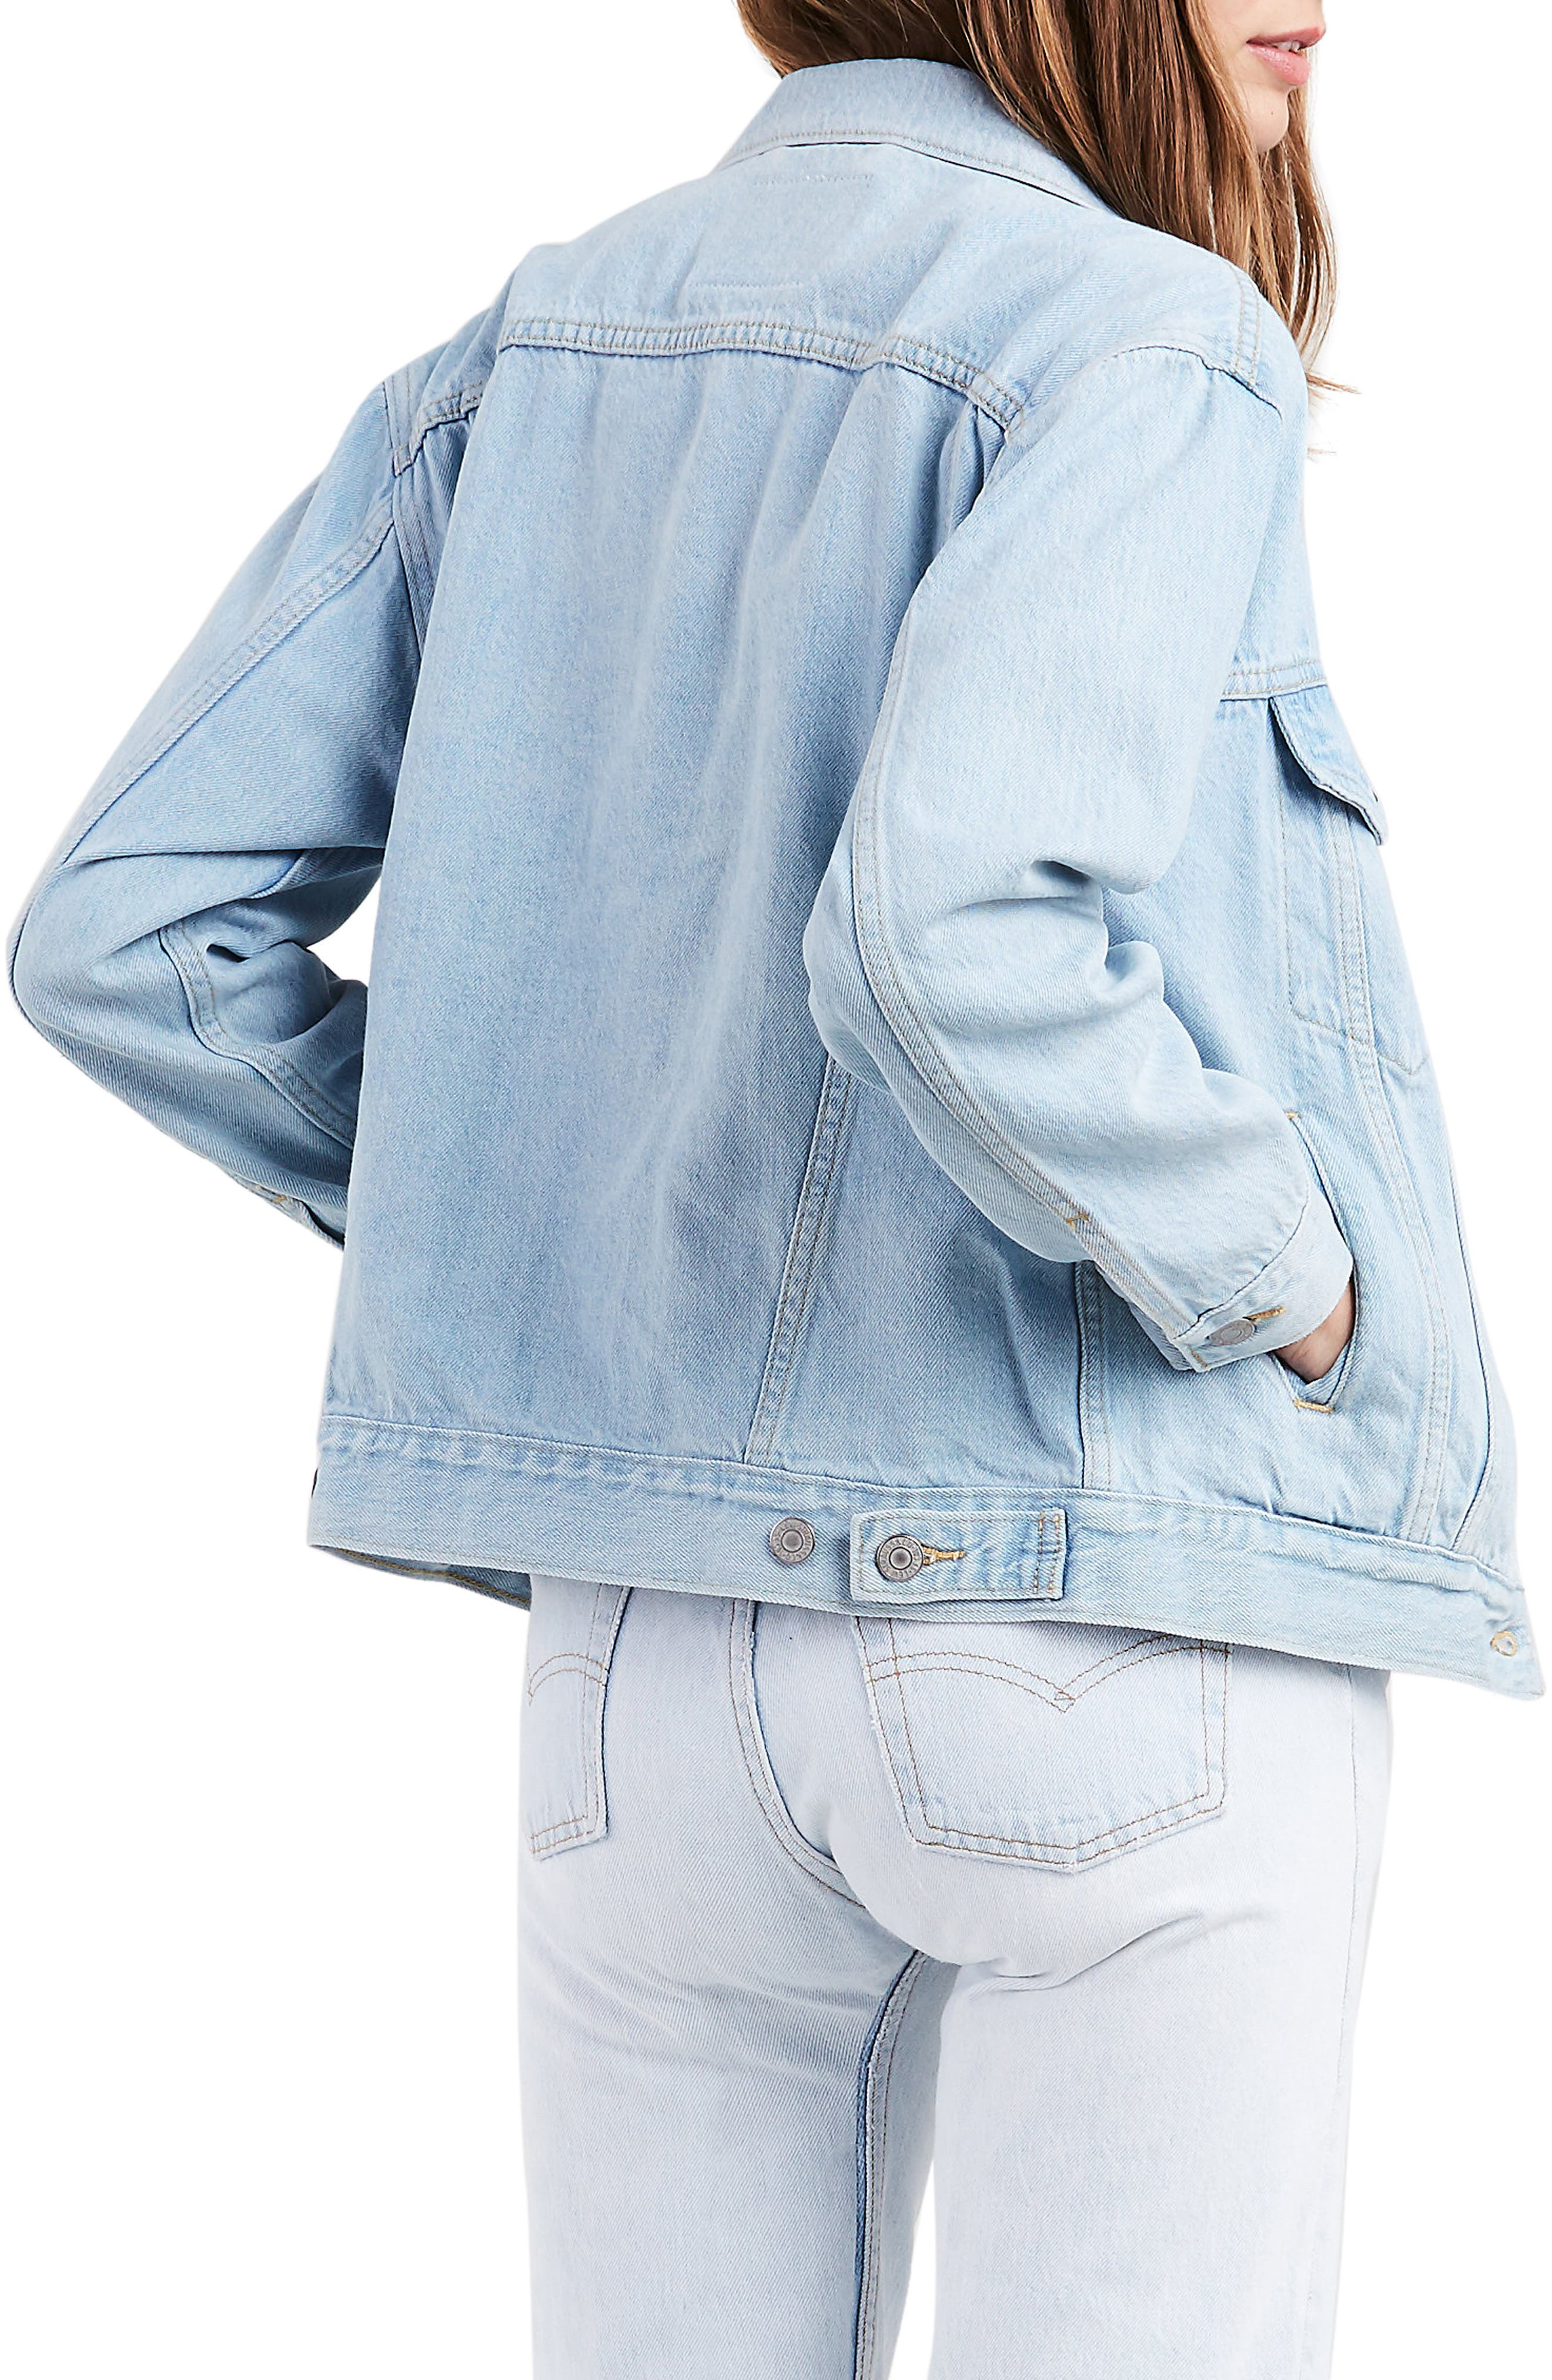 LEVI'S<SUP>®</SUP>, Ex-Boyfriend Denim Trucker Jacket, Alternate thumbnail 2, color, 420